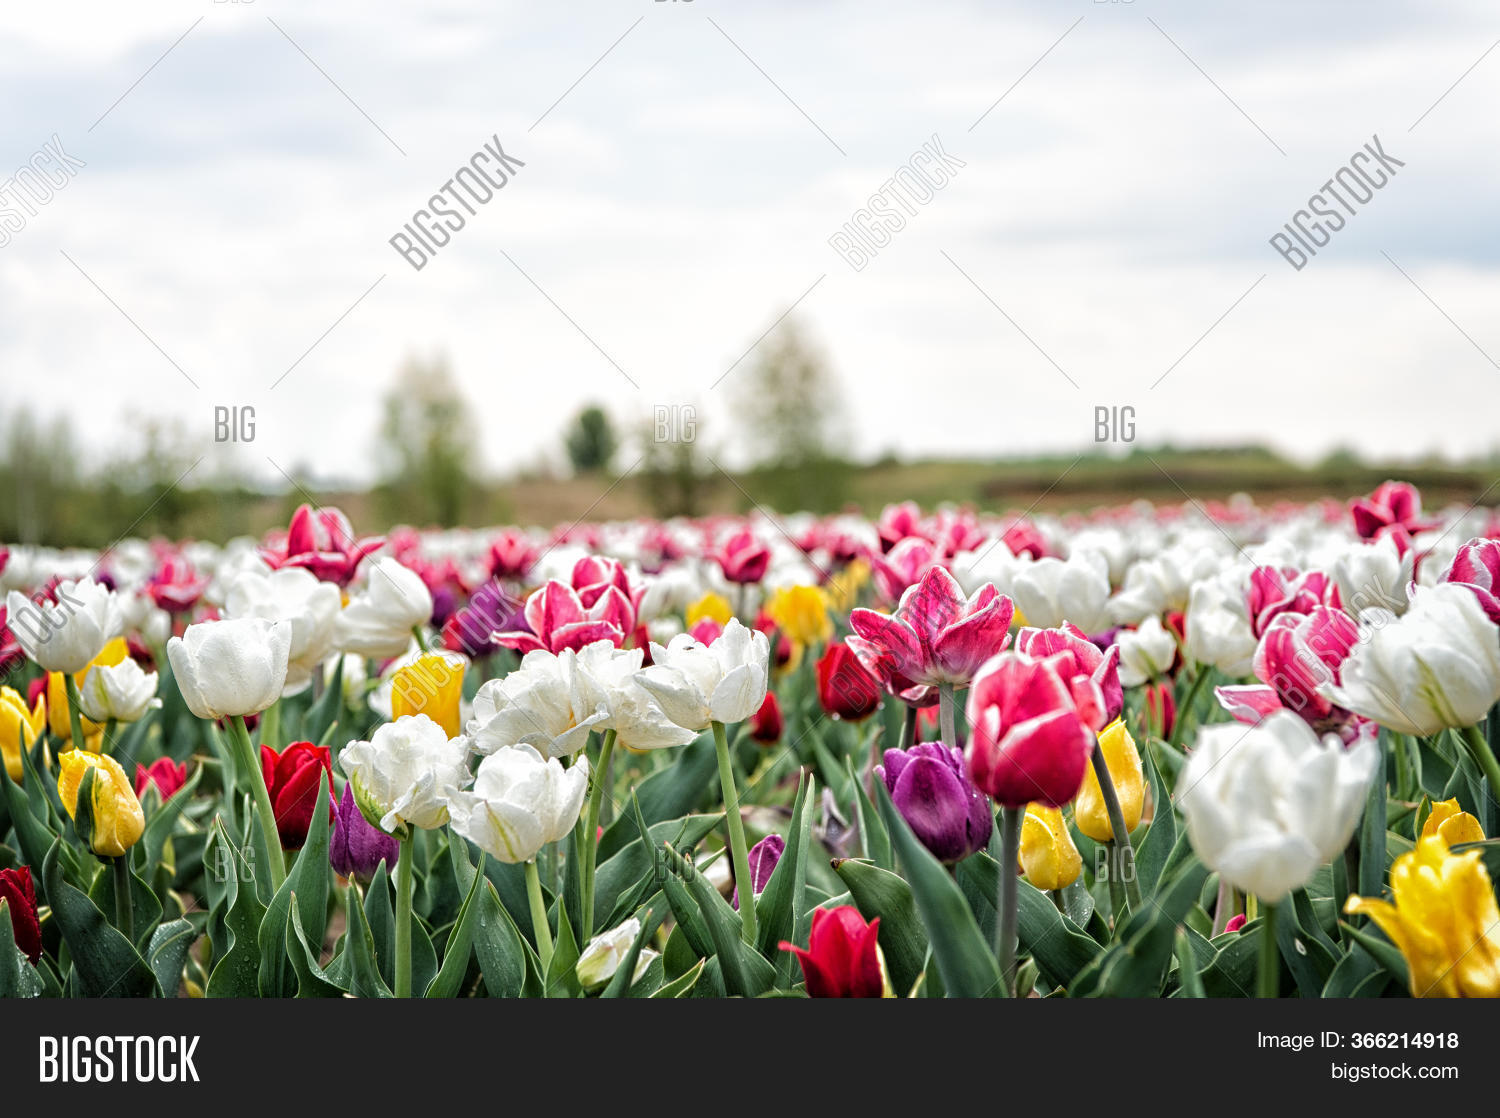 Bulb Fields Springtime Image Photo Free Trial Bigstock